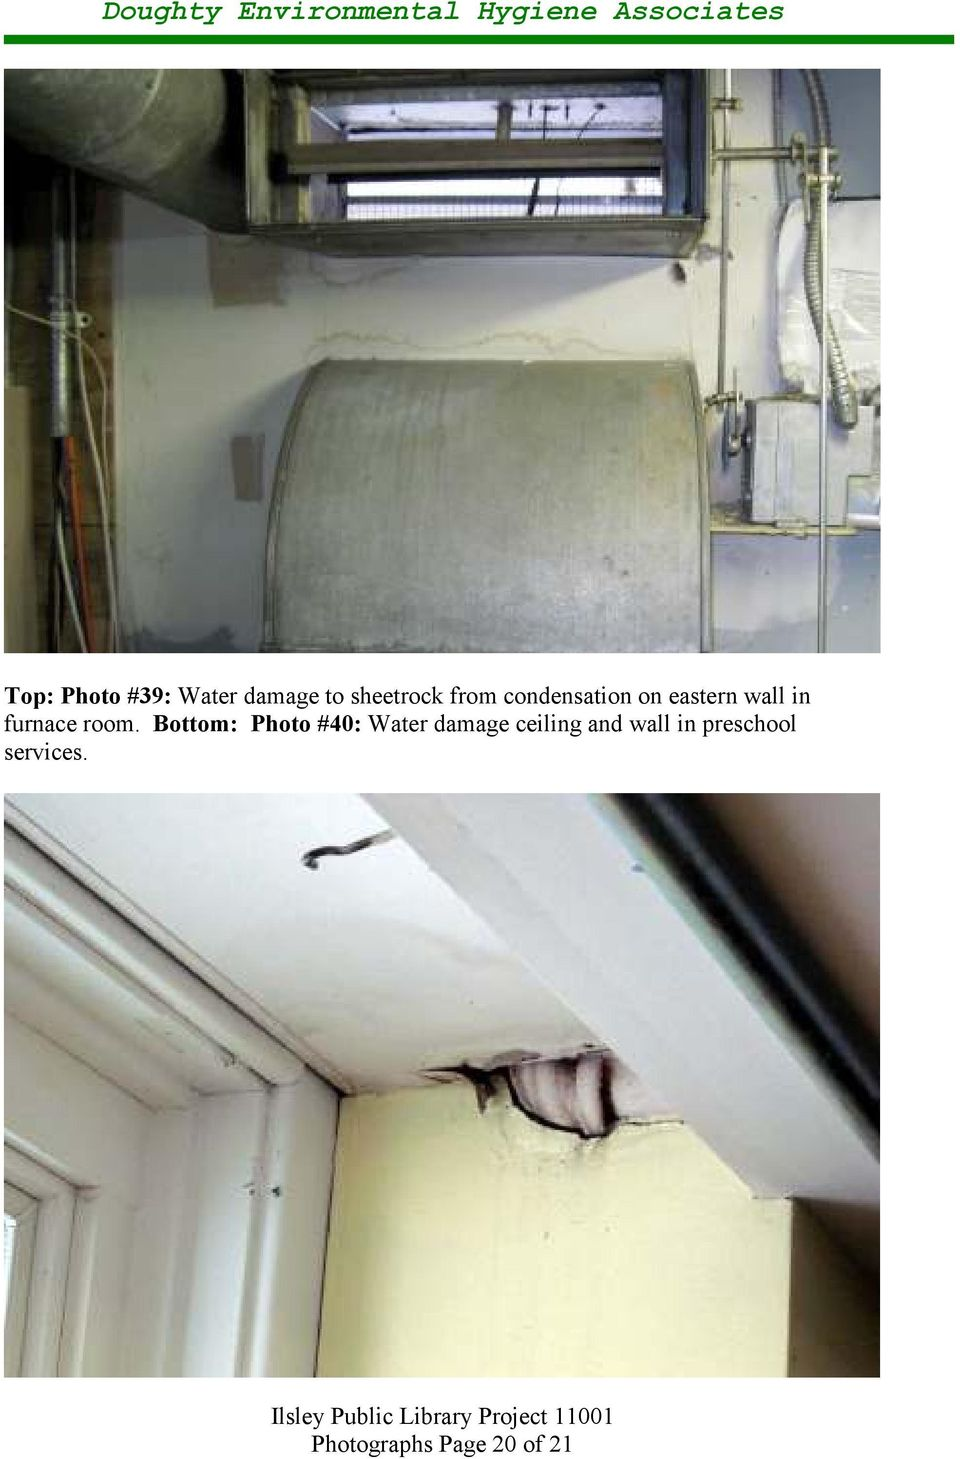 Bottom: Photo #40: Water damage ceiling and